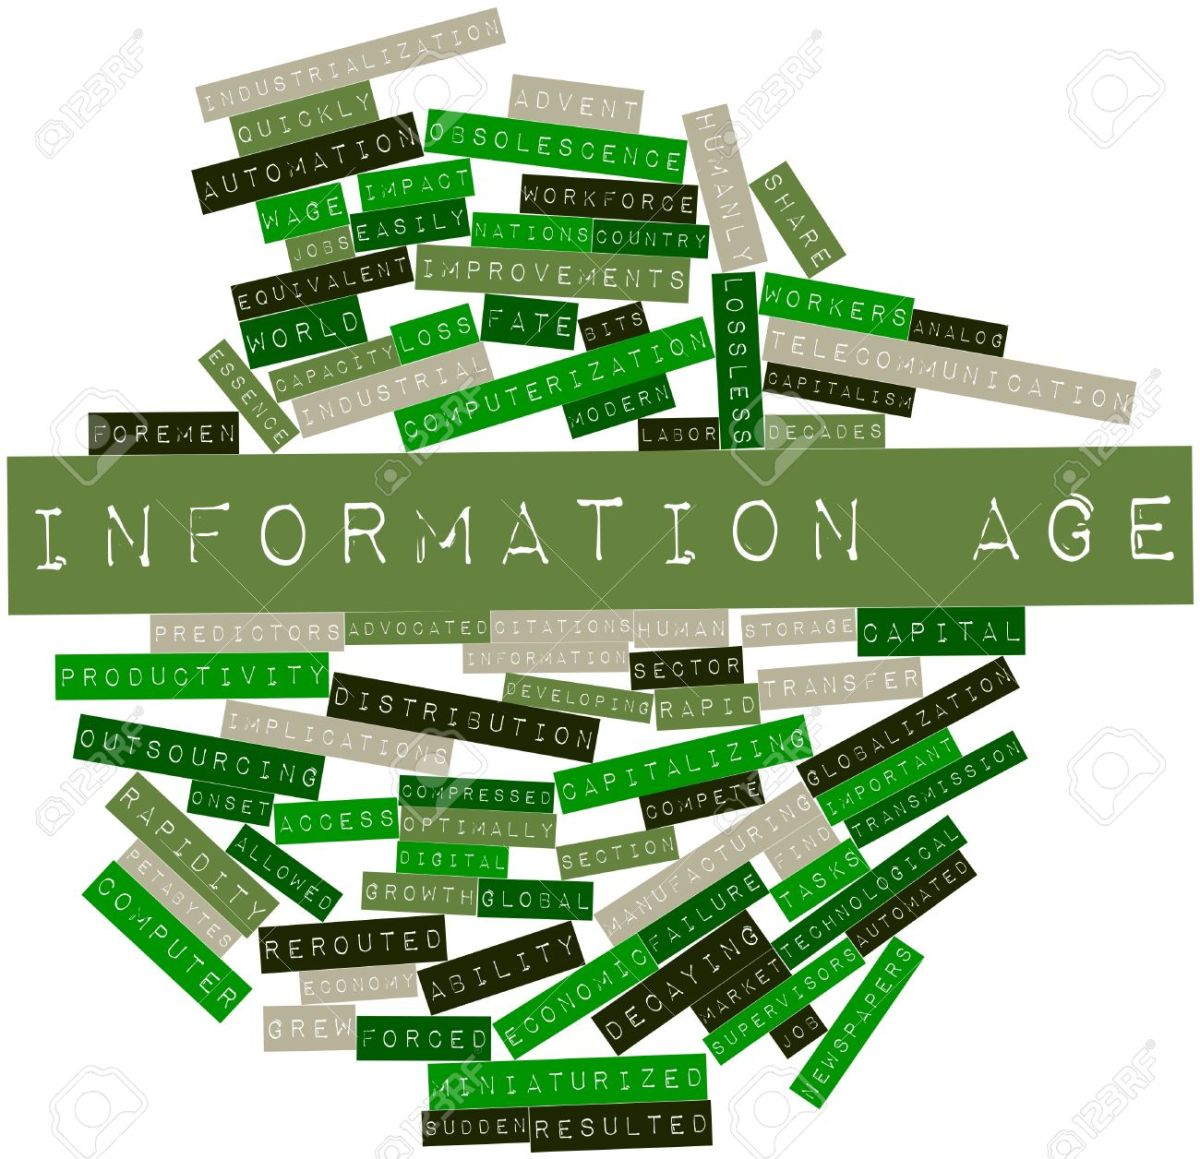 Knowledge is Power, Information isPower-Source.